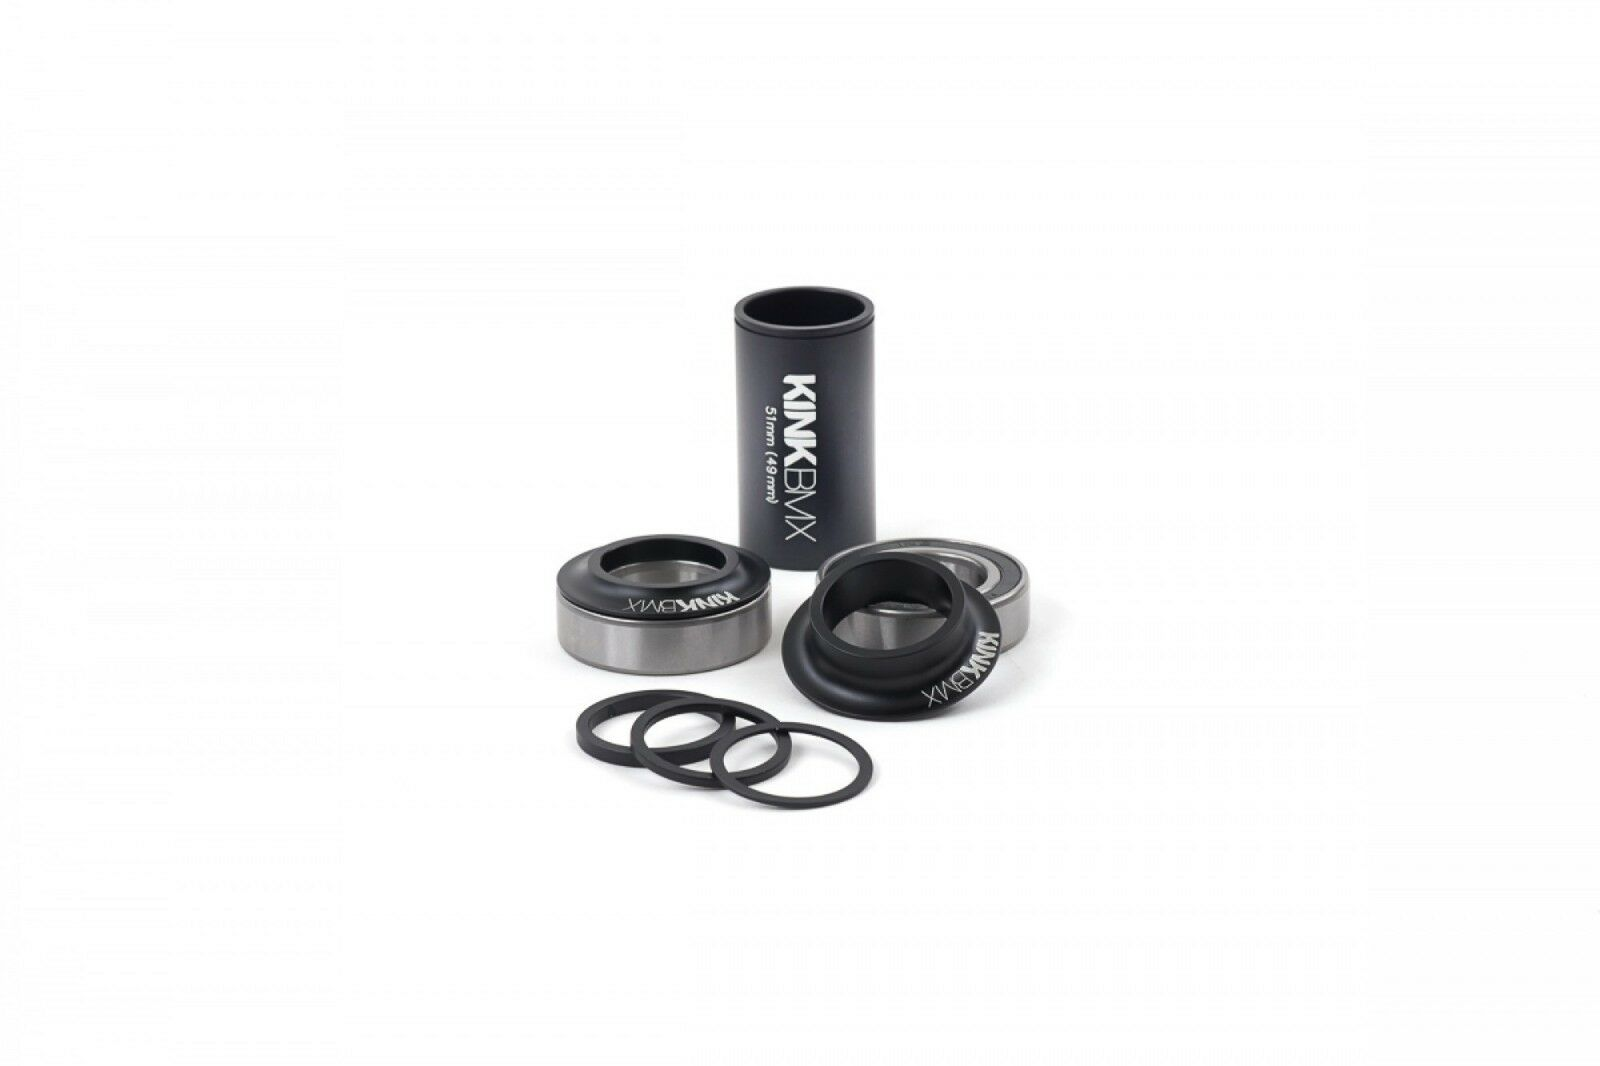 Kink 24mm Mid BMX Bottom Bracket Kit - Matte Black